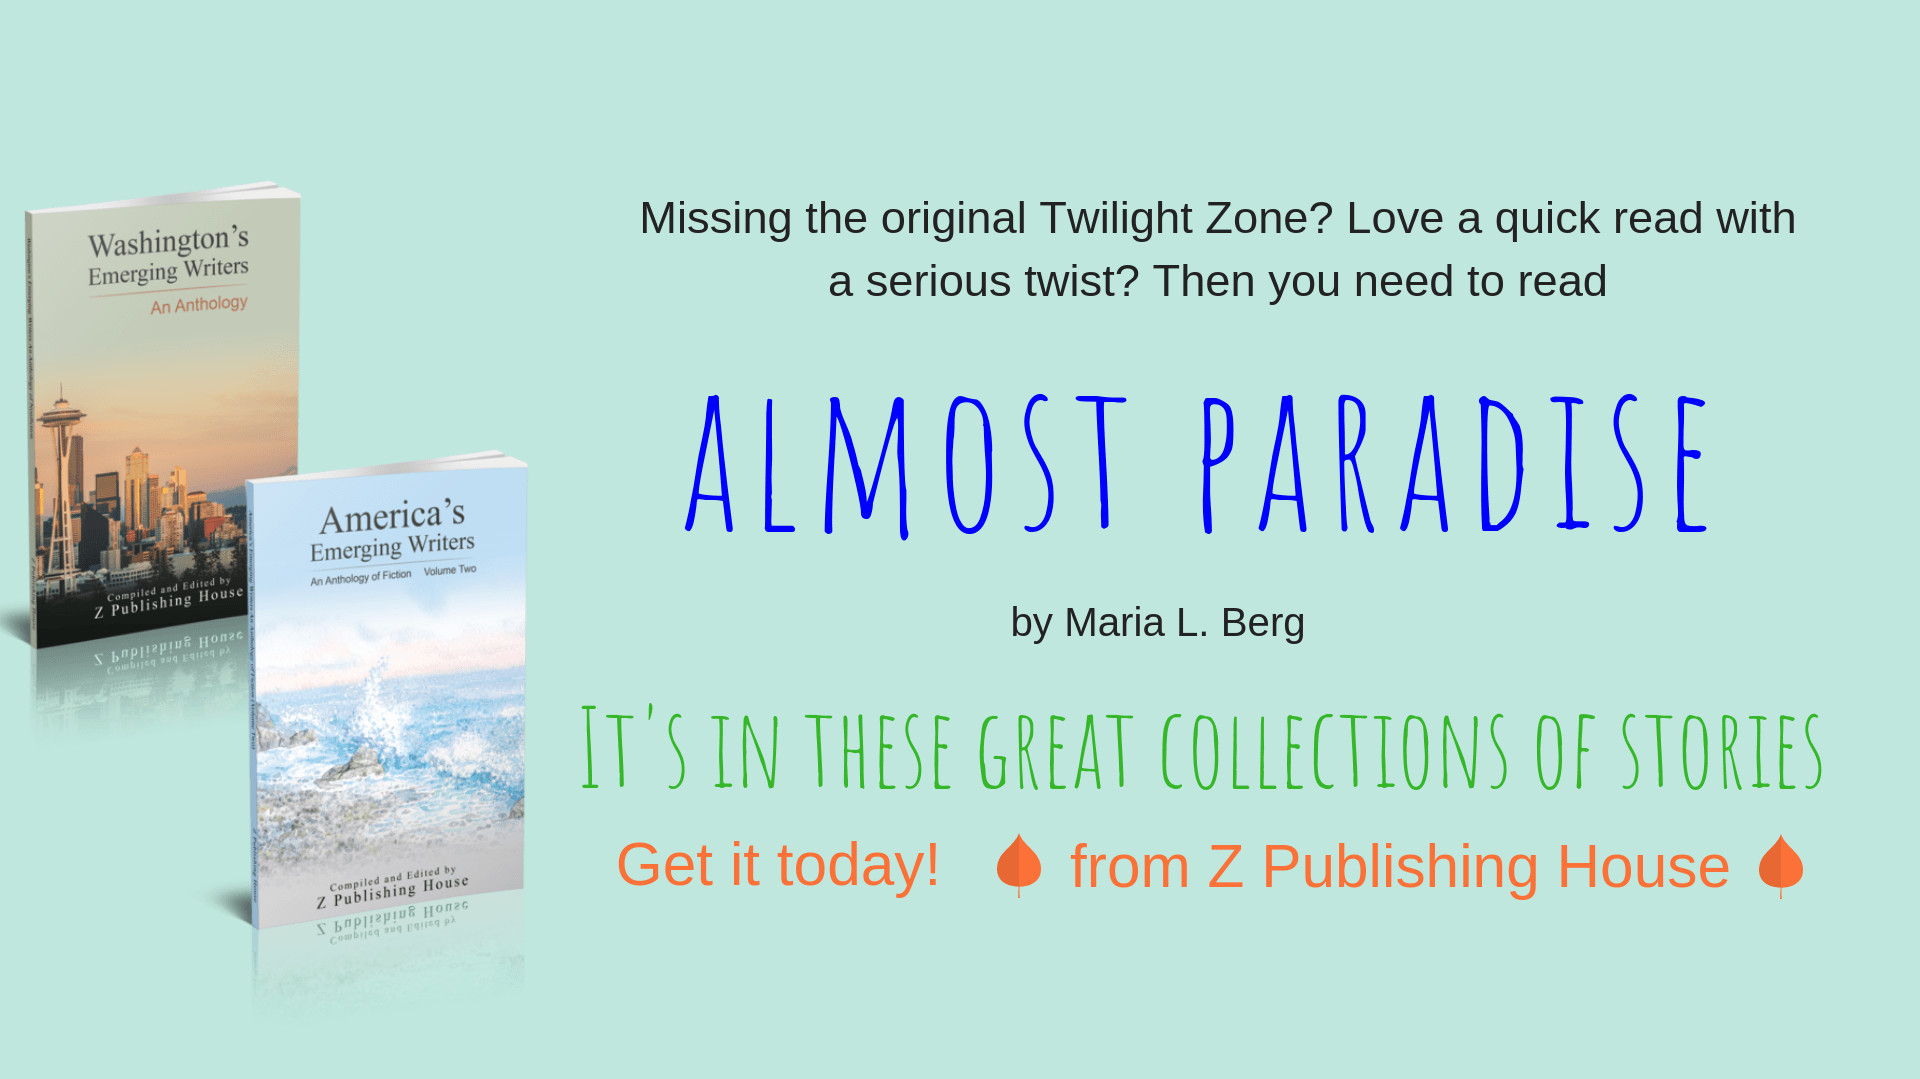 My story Almost Paradise is now available in two anthologies: Washington's Emerging Writers and America's Emerging Writers.